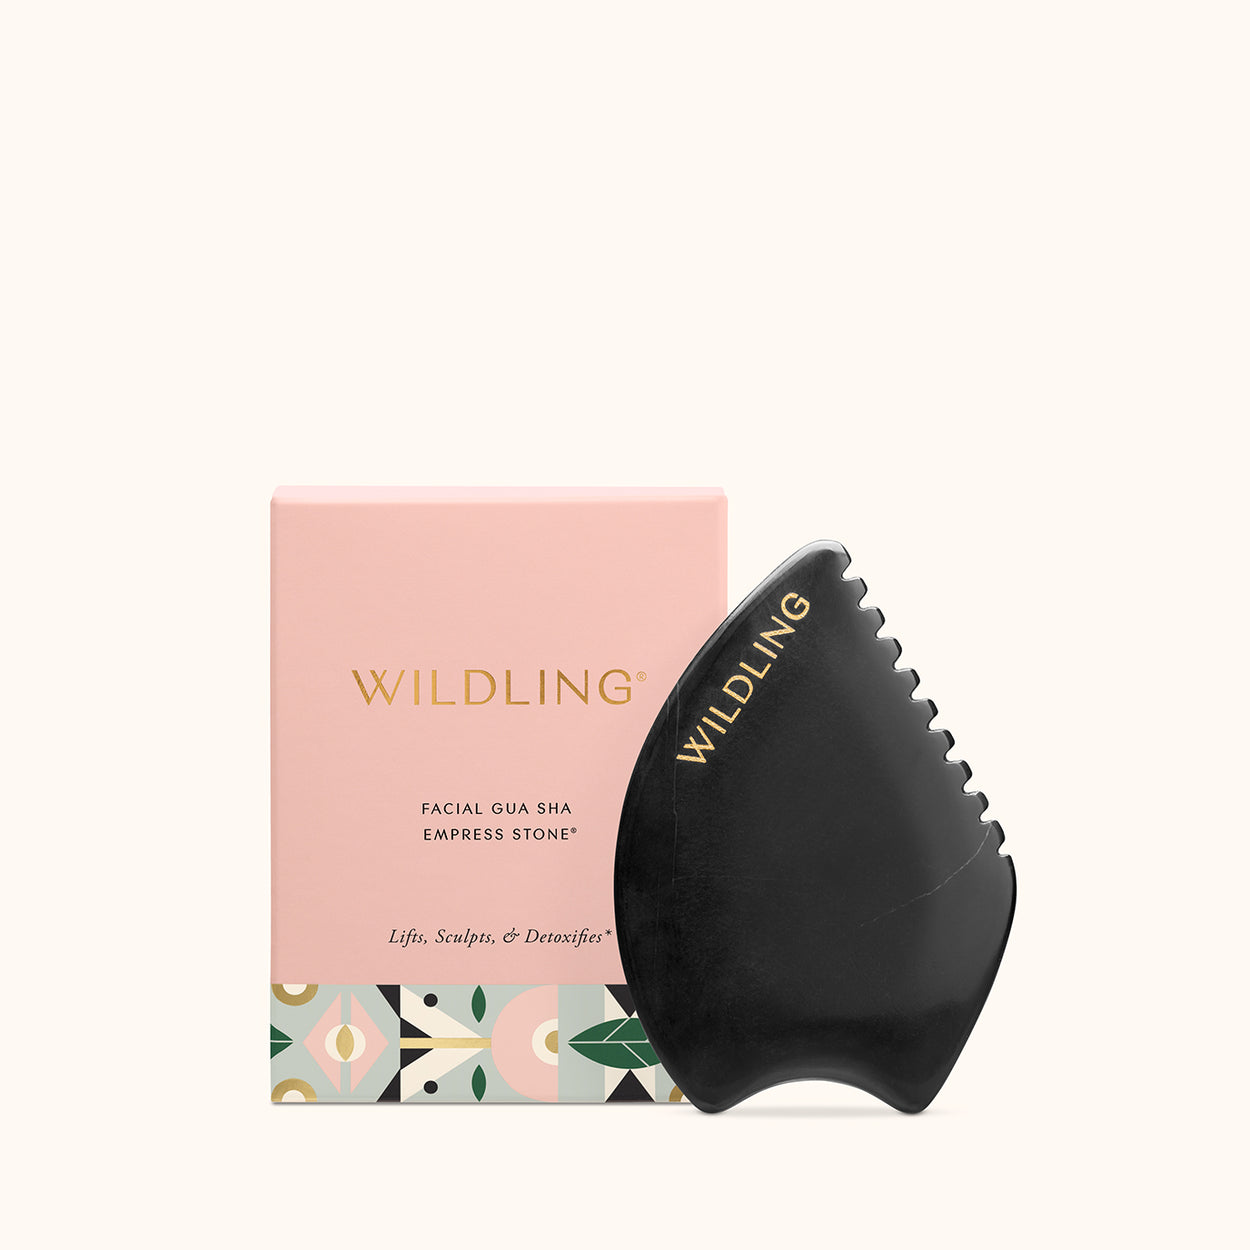 WLD-2477 Wildling Gua Sha Empress Stone with box